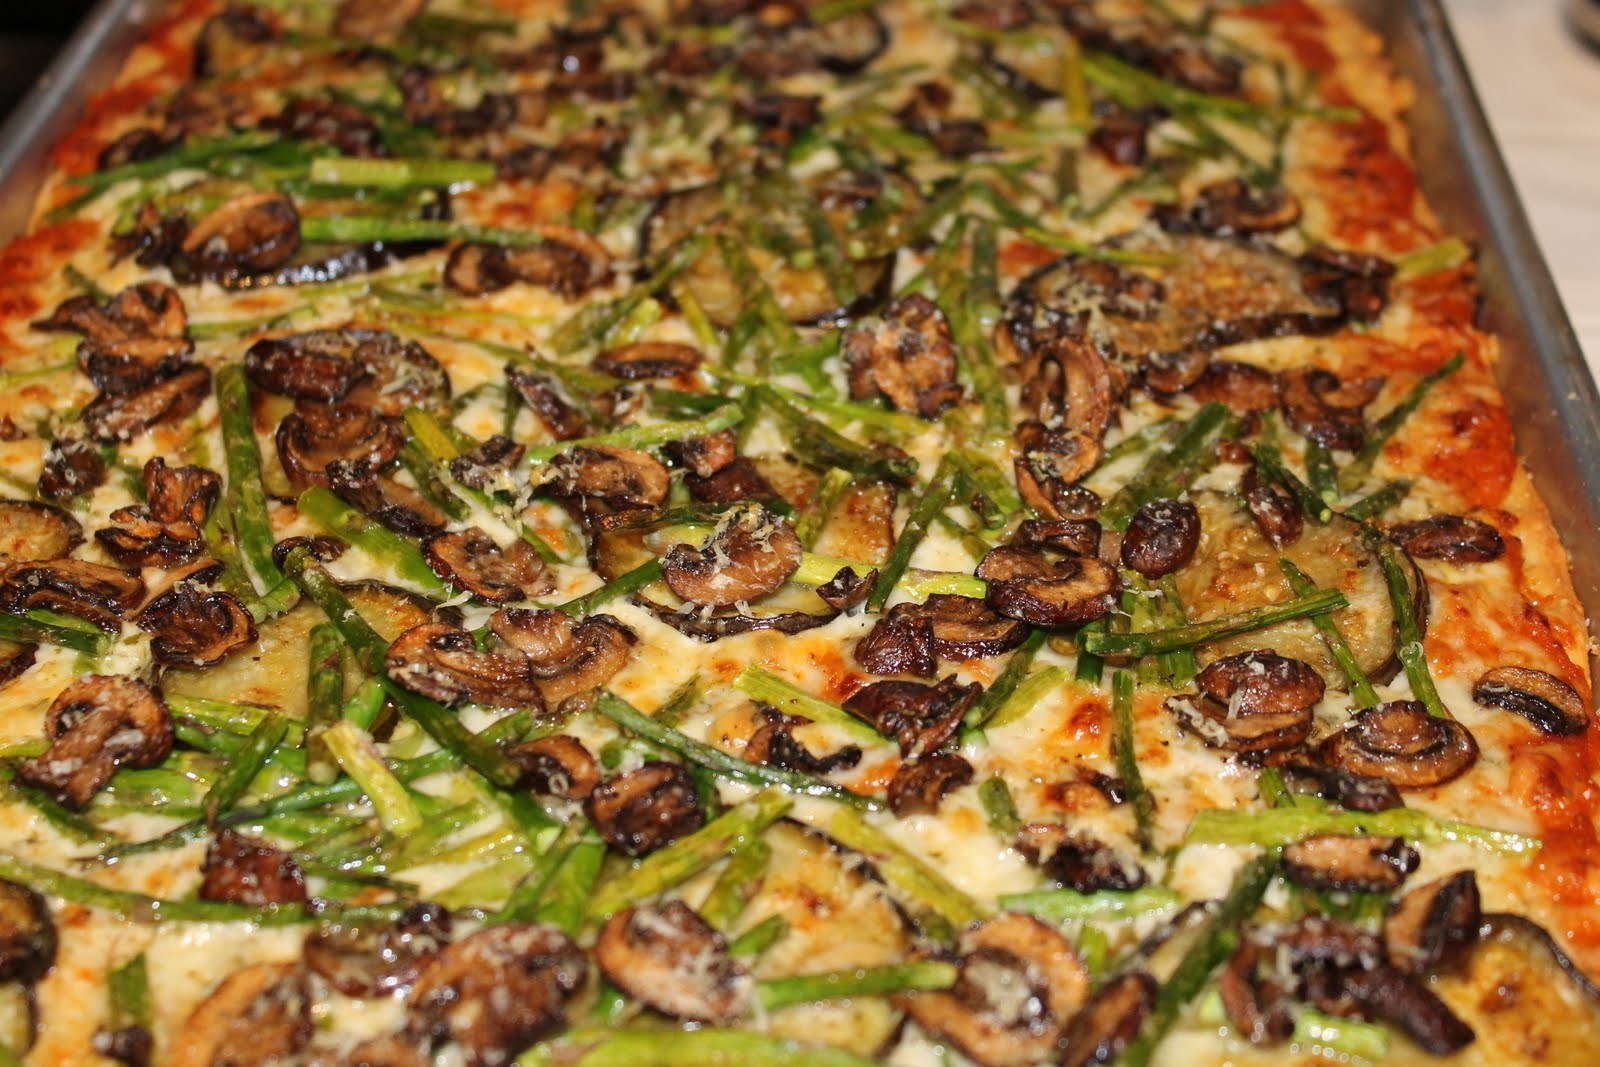 For the dough, I made a basic recipe that I use for just about all my ...